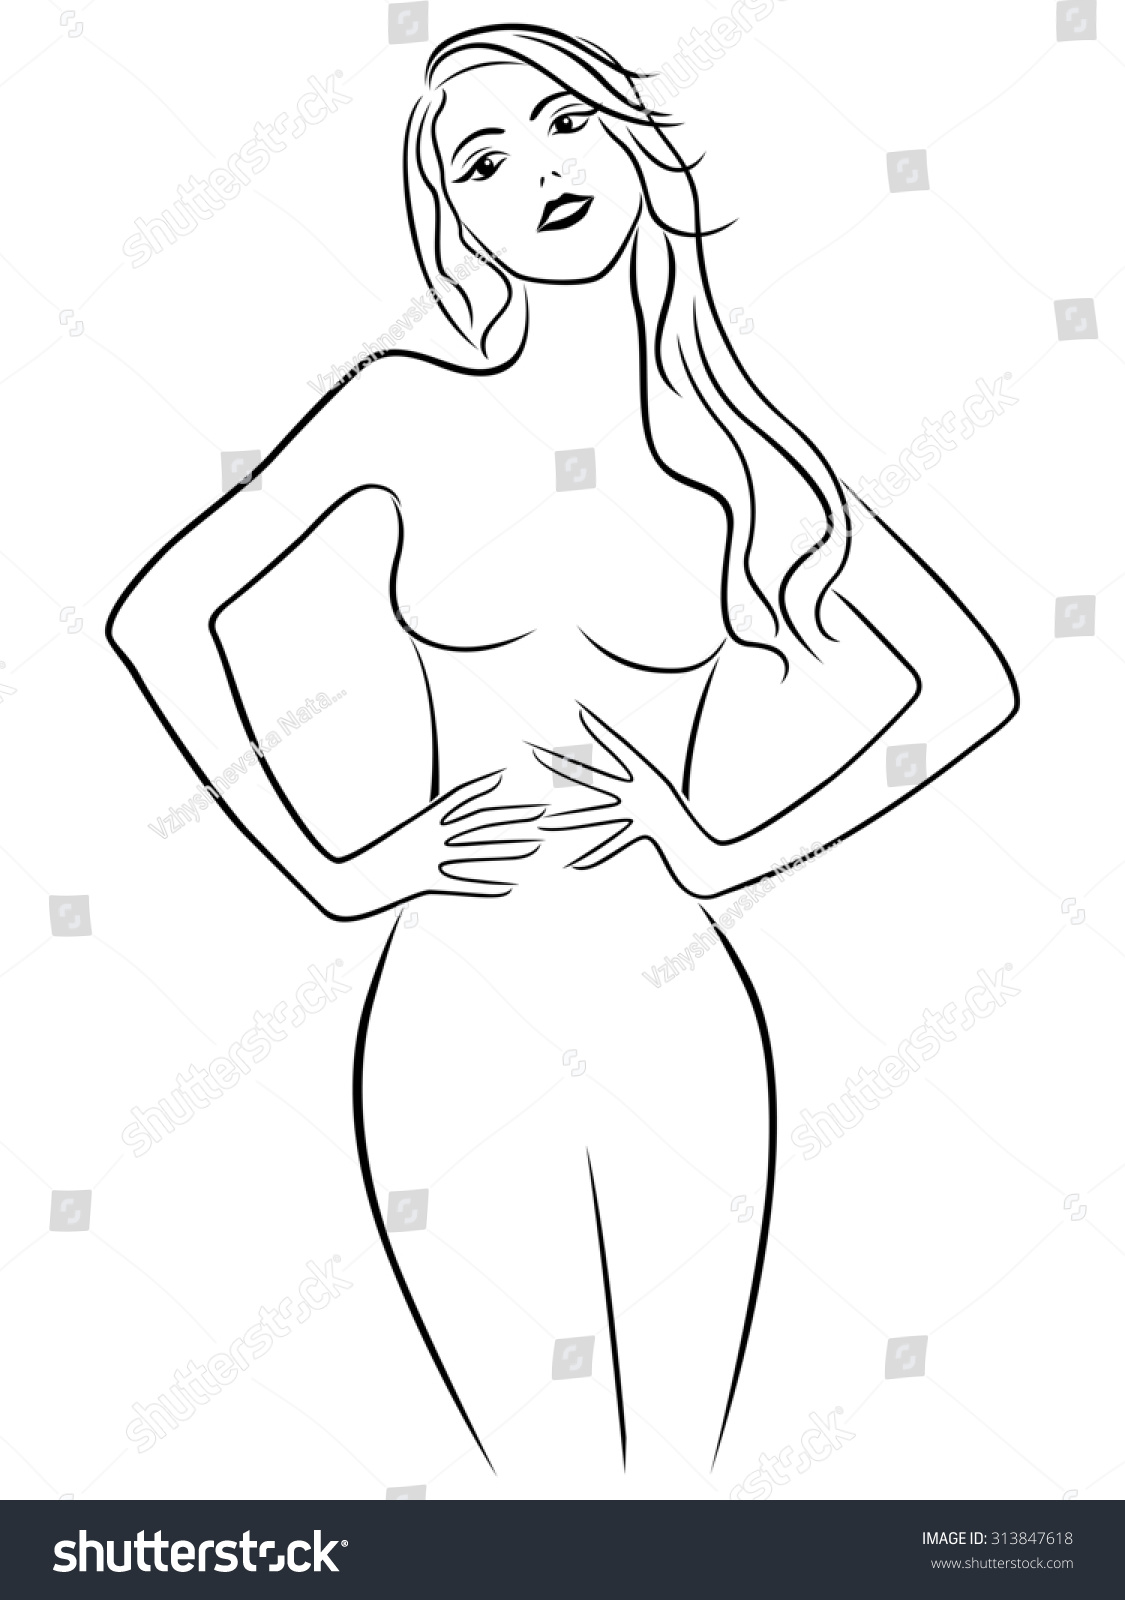 It is an image of Gratifying Hands On Hips Pose Drawing